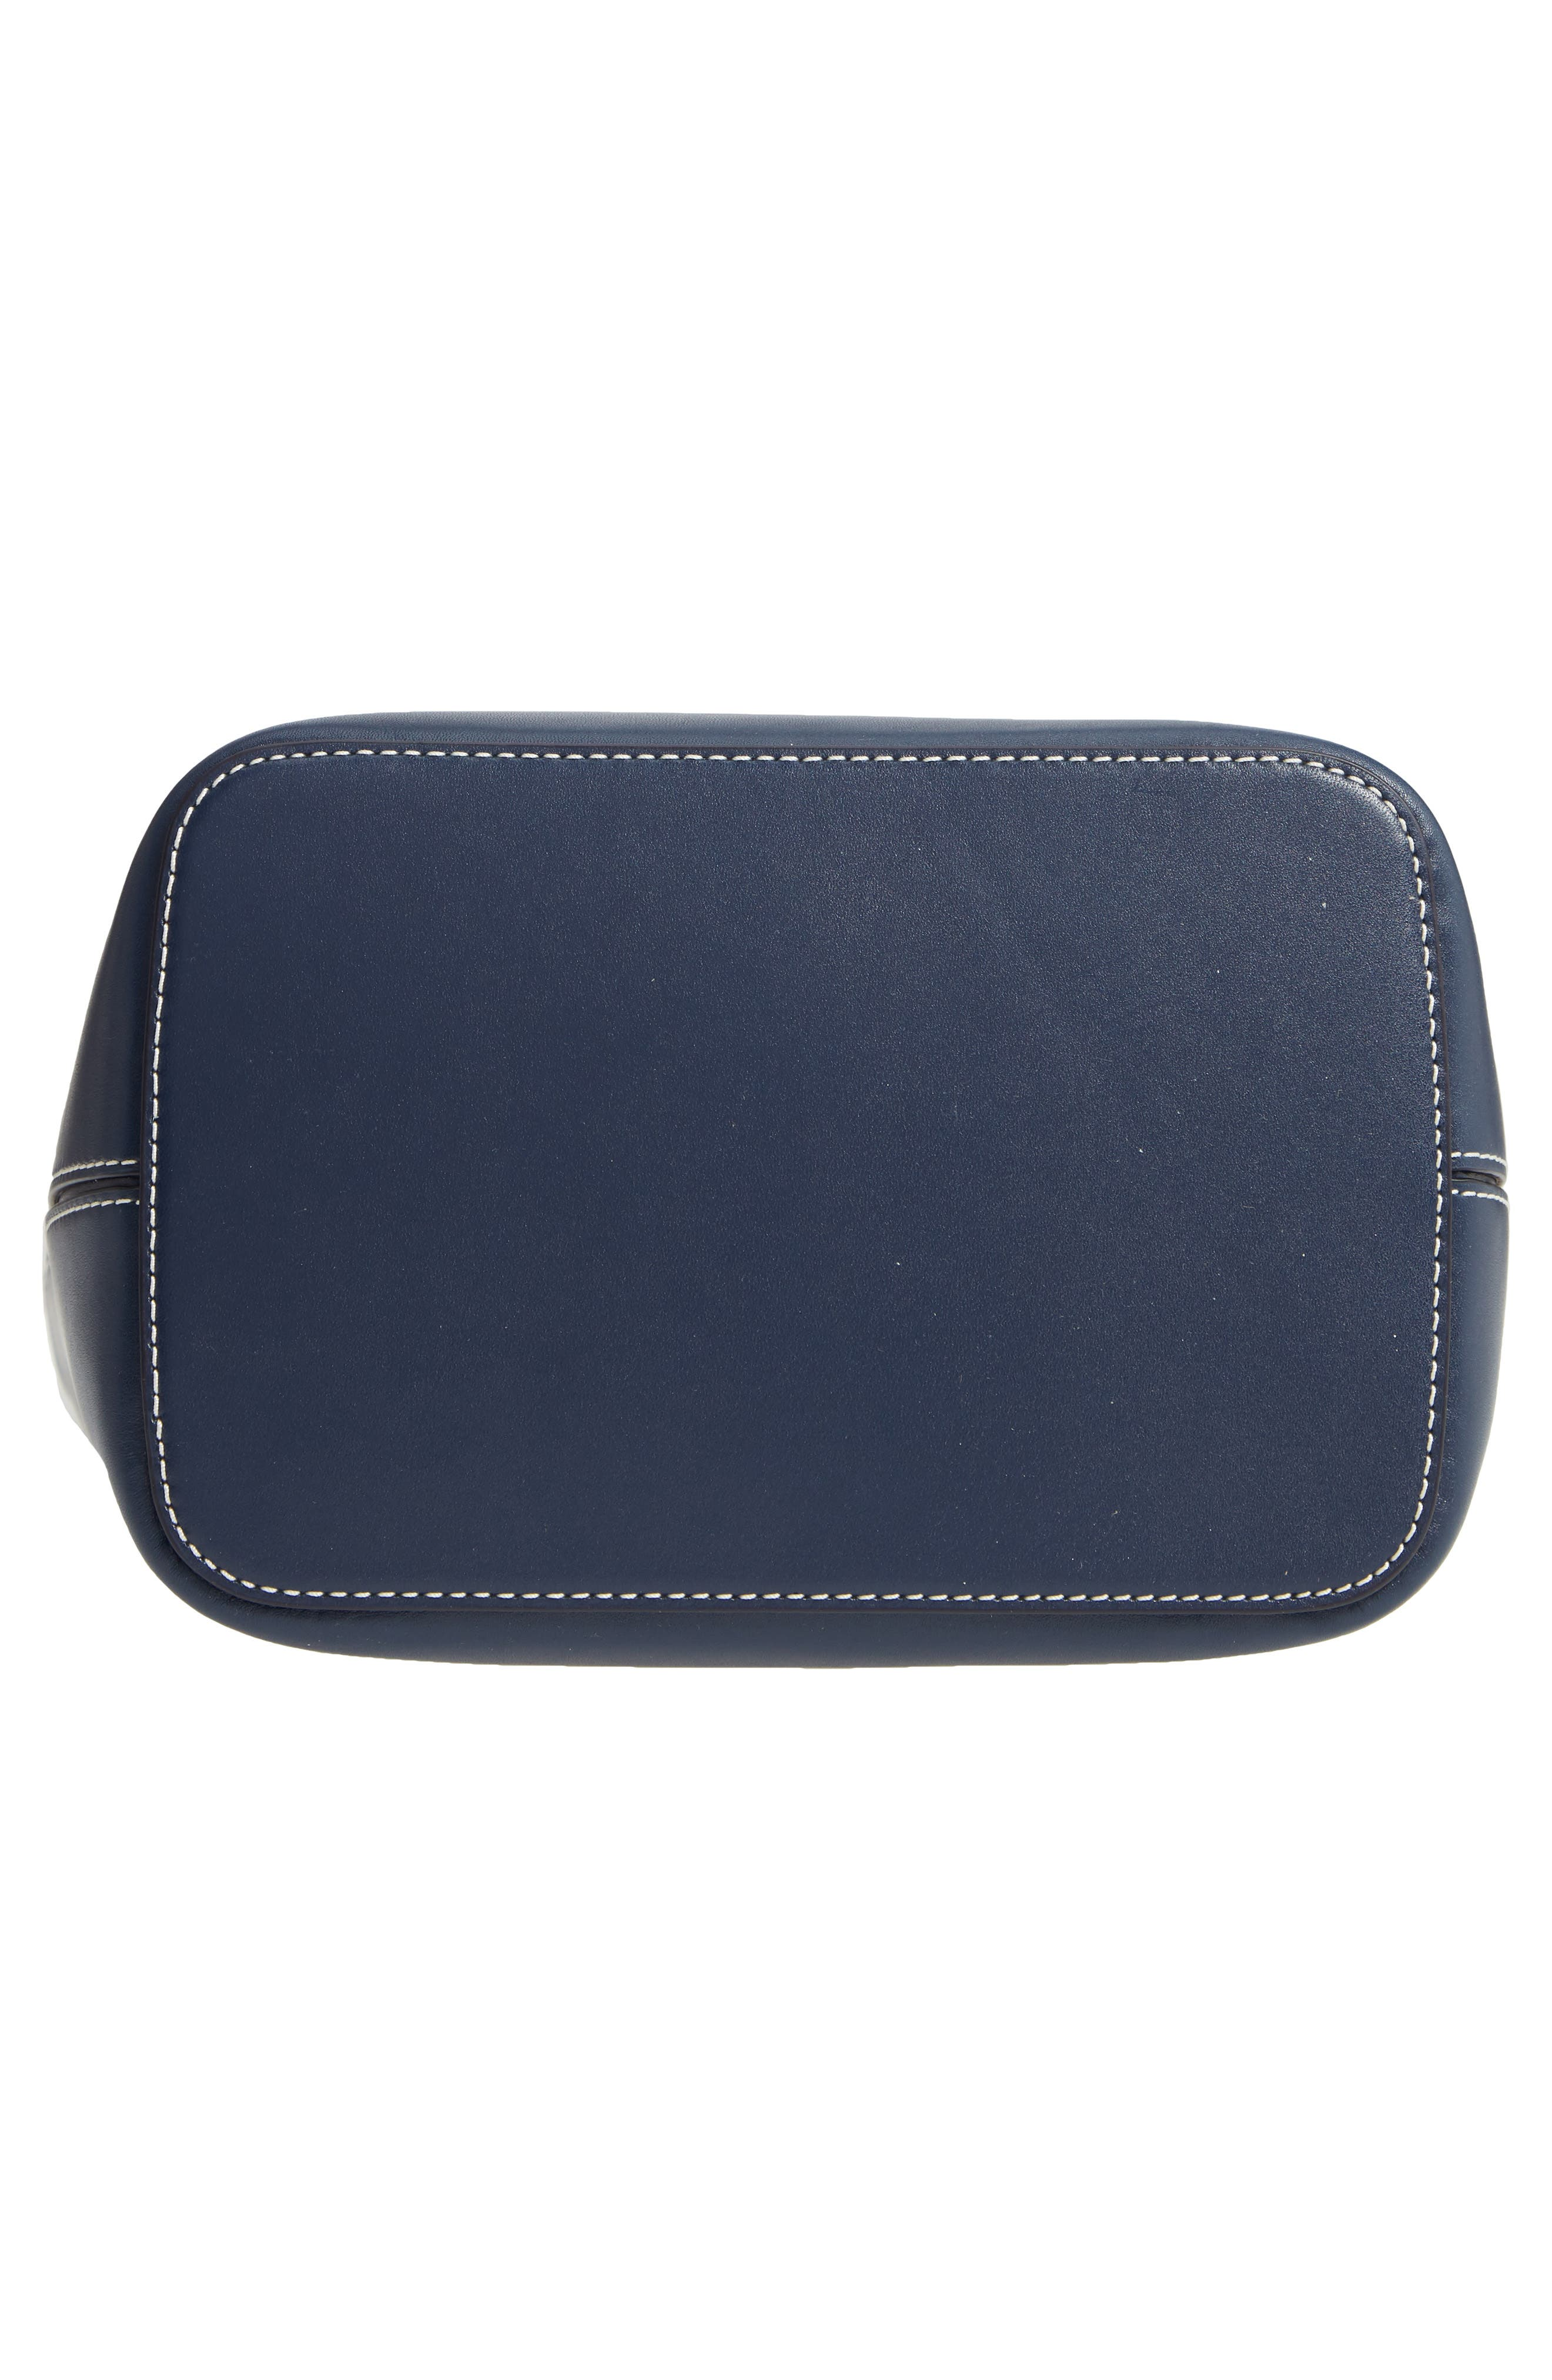 Miller Hobo Bag,                             Alternate thumbnail 6, color,                             ROYAL NAVY